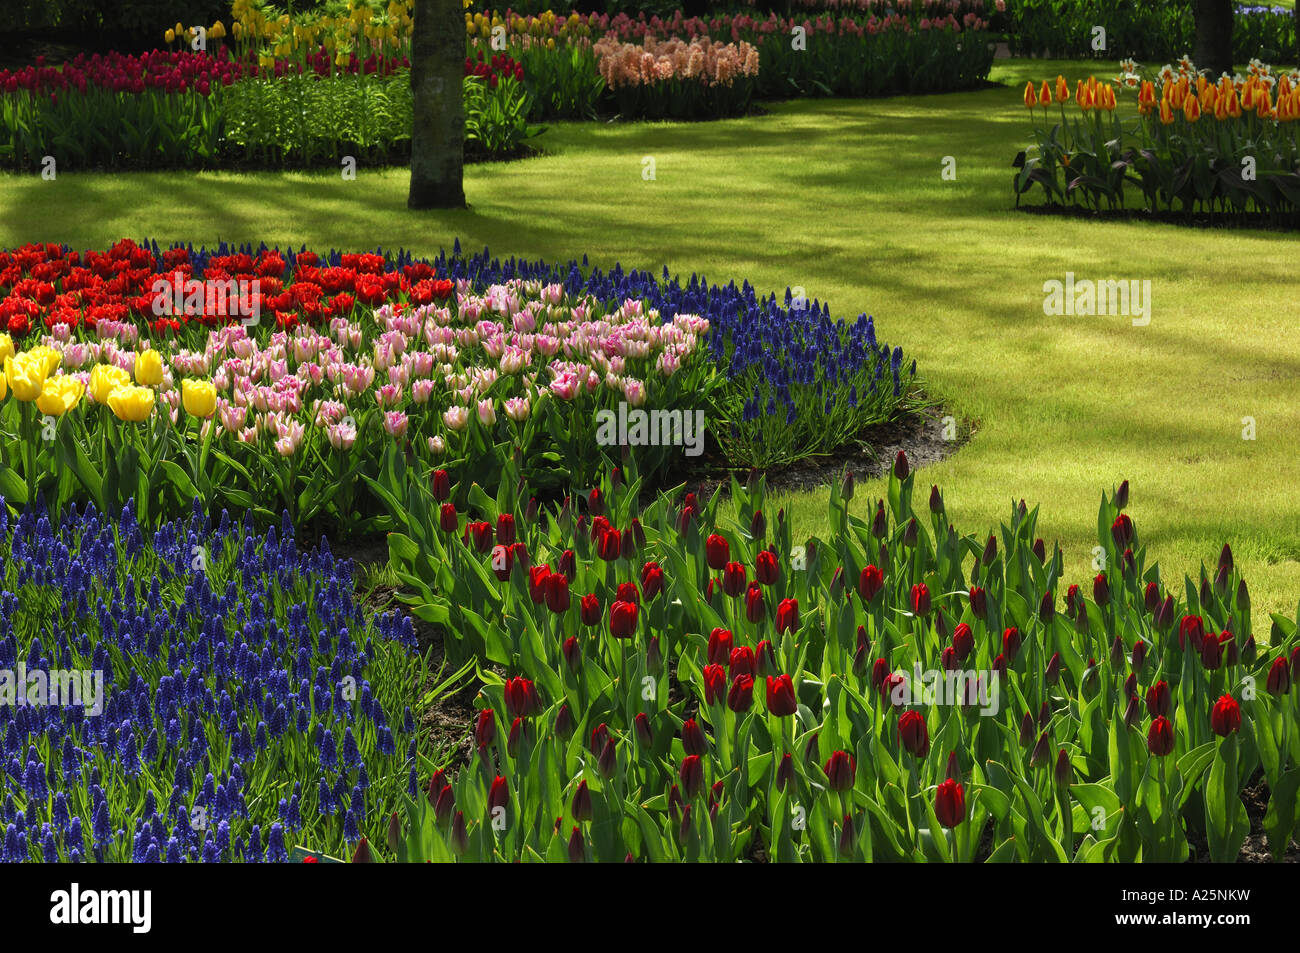 common garden tulip (Tulipa gesneriana), park with flowerbeds with different coloured tulips and grape hyacinths, Stock Photo